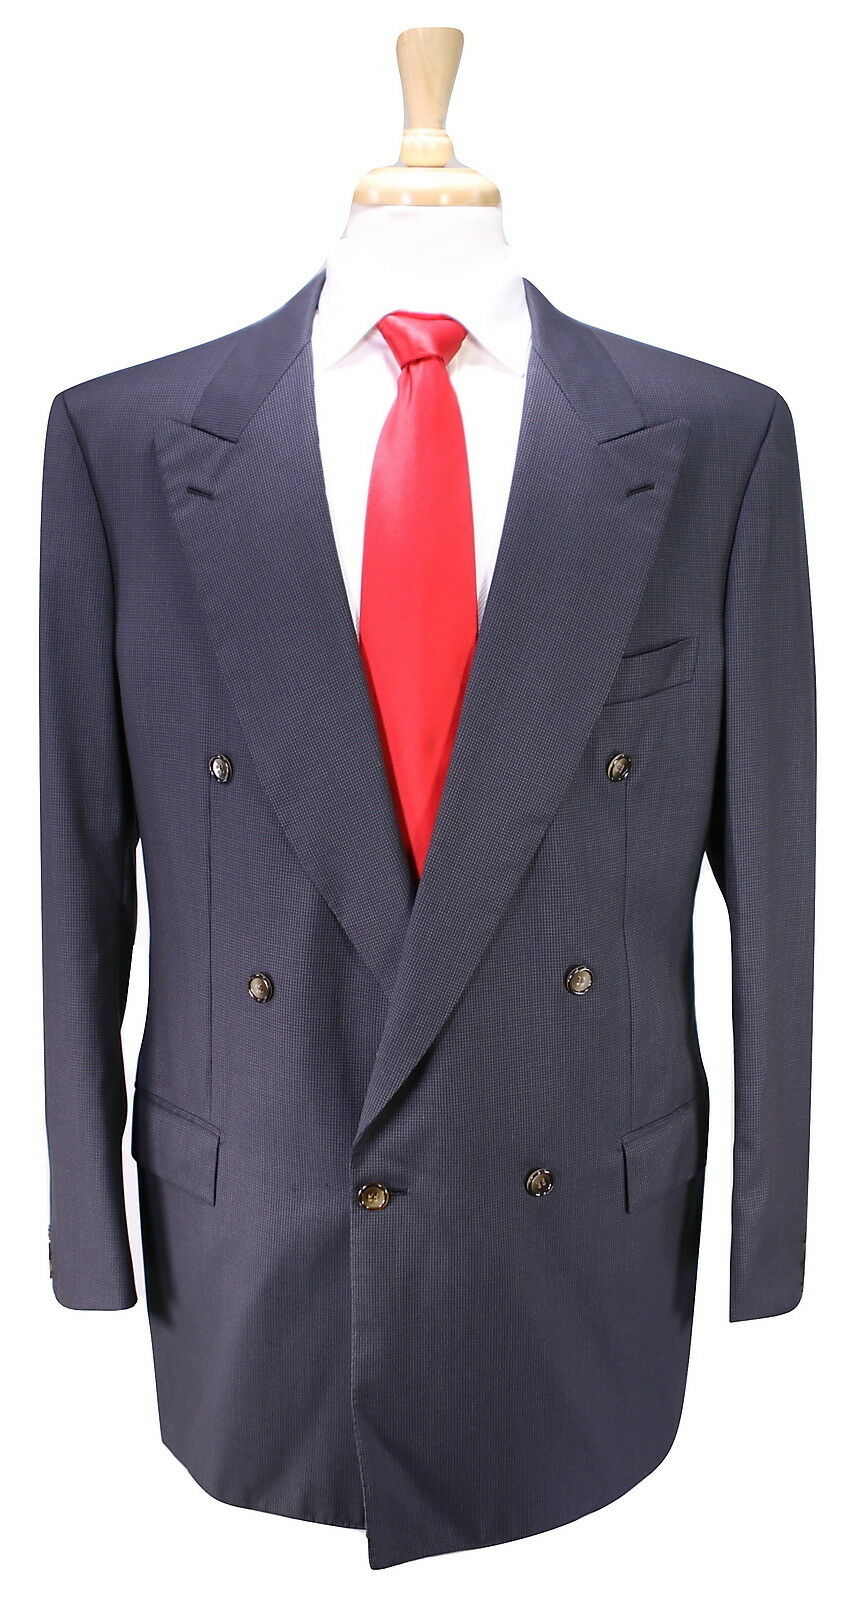 BRIONI  Handmade in  Navy/Braun Woven Double Breasted Wool Suit 42L